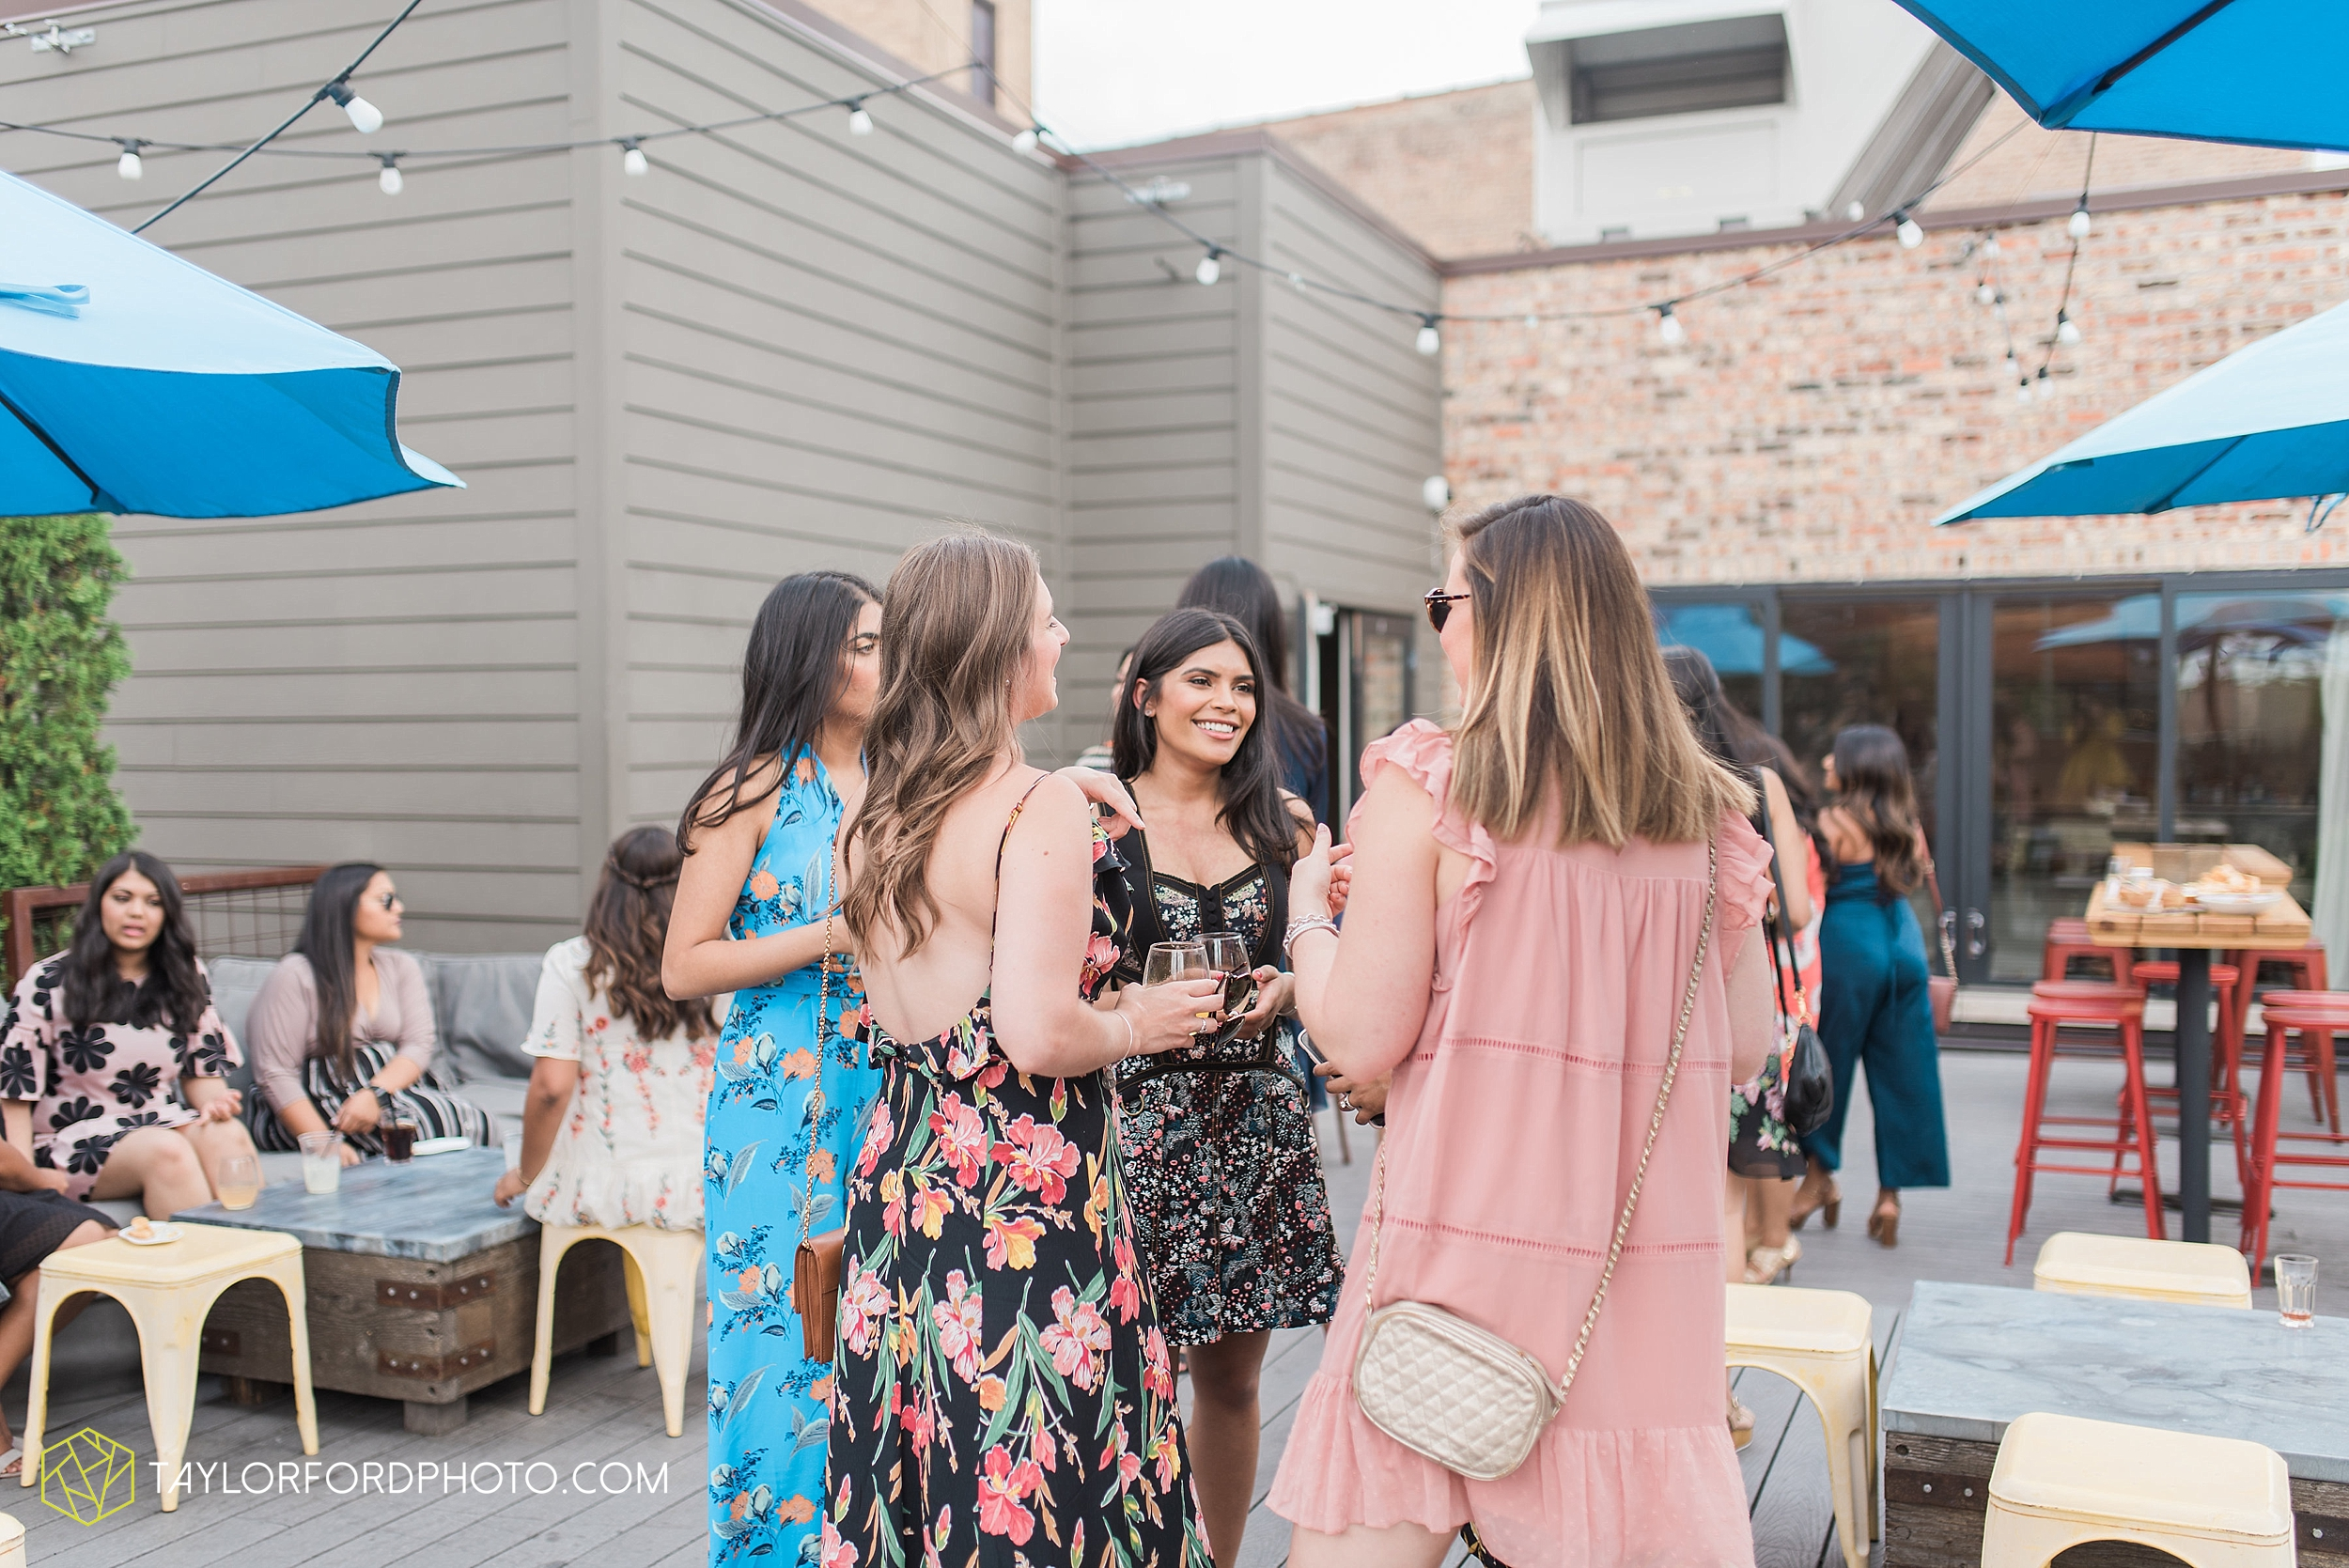 chicago-illinois-bridal-shower-wedding-engagement-photographer-Taylor-Ford-Photography-the-little-goat-diner-rooftop-indian-ceremony_5085.jpg